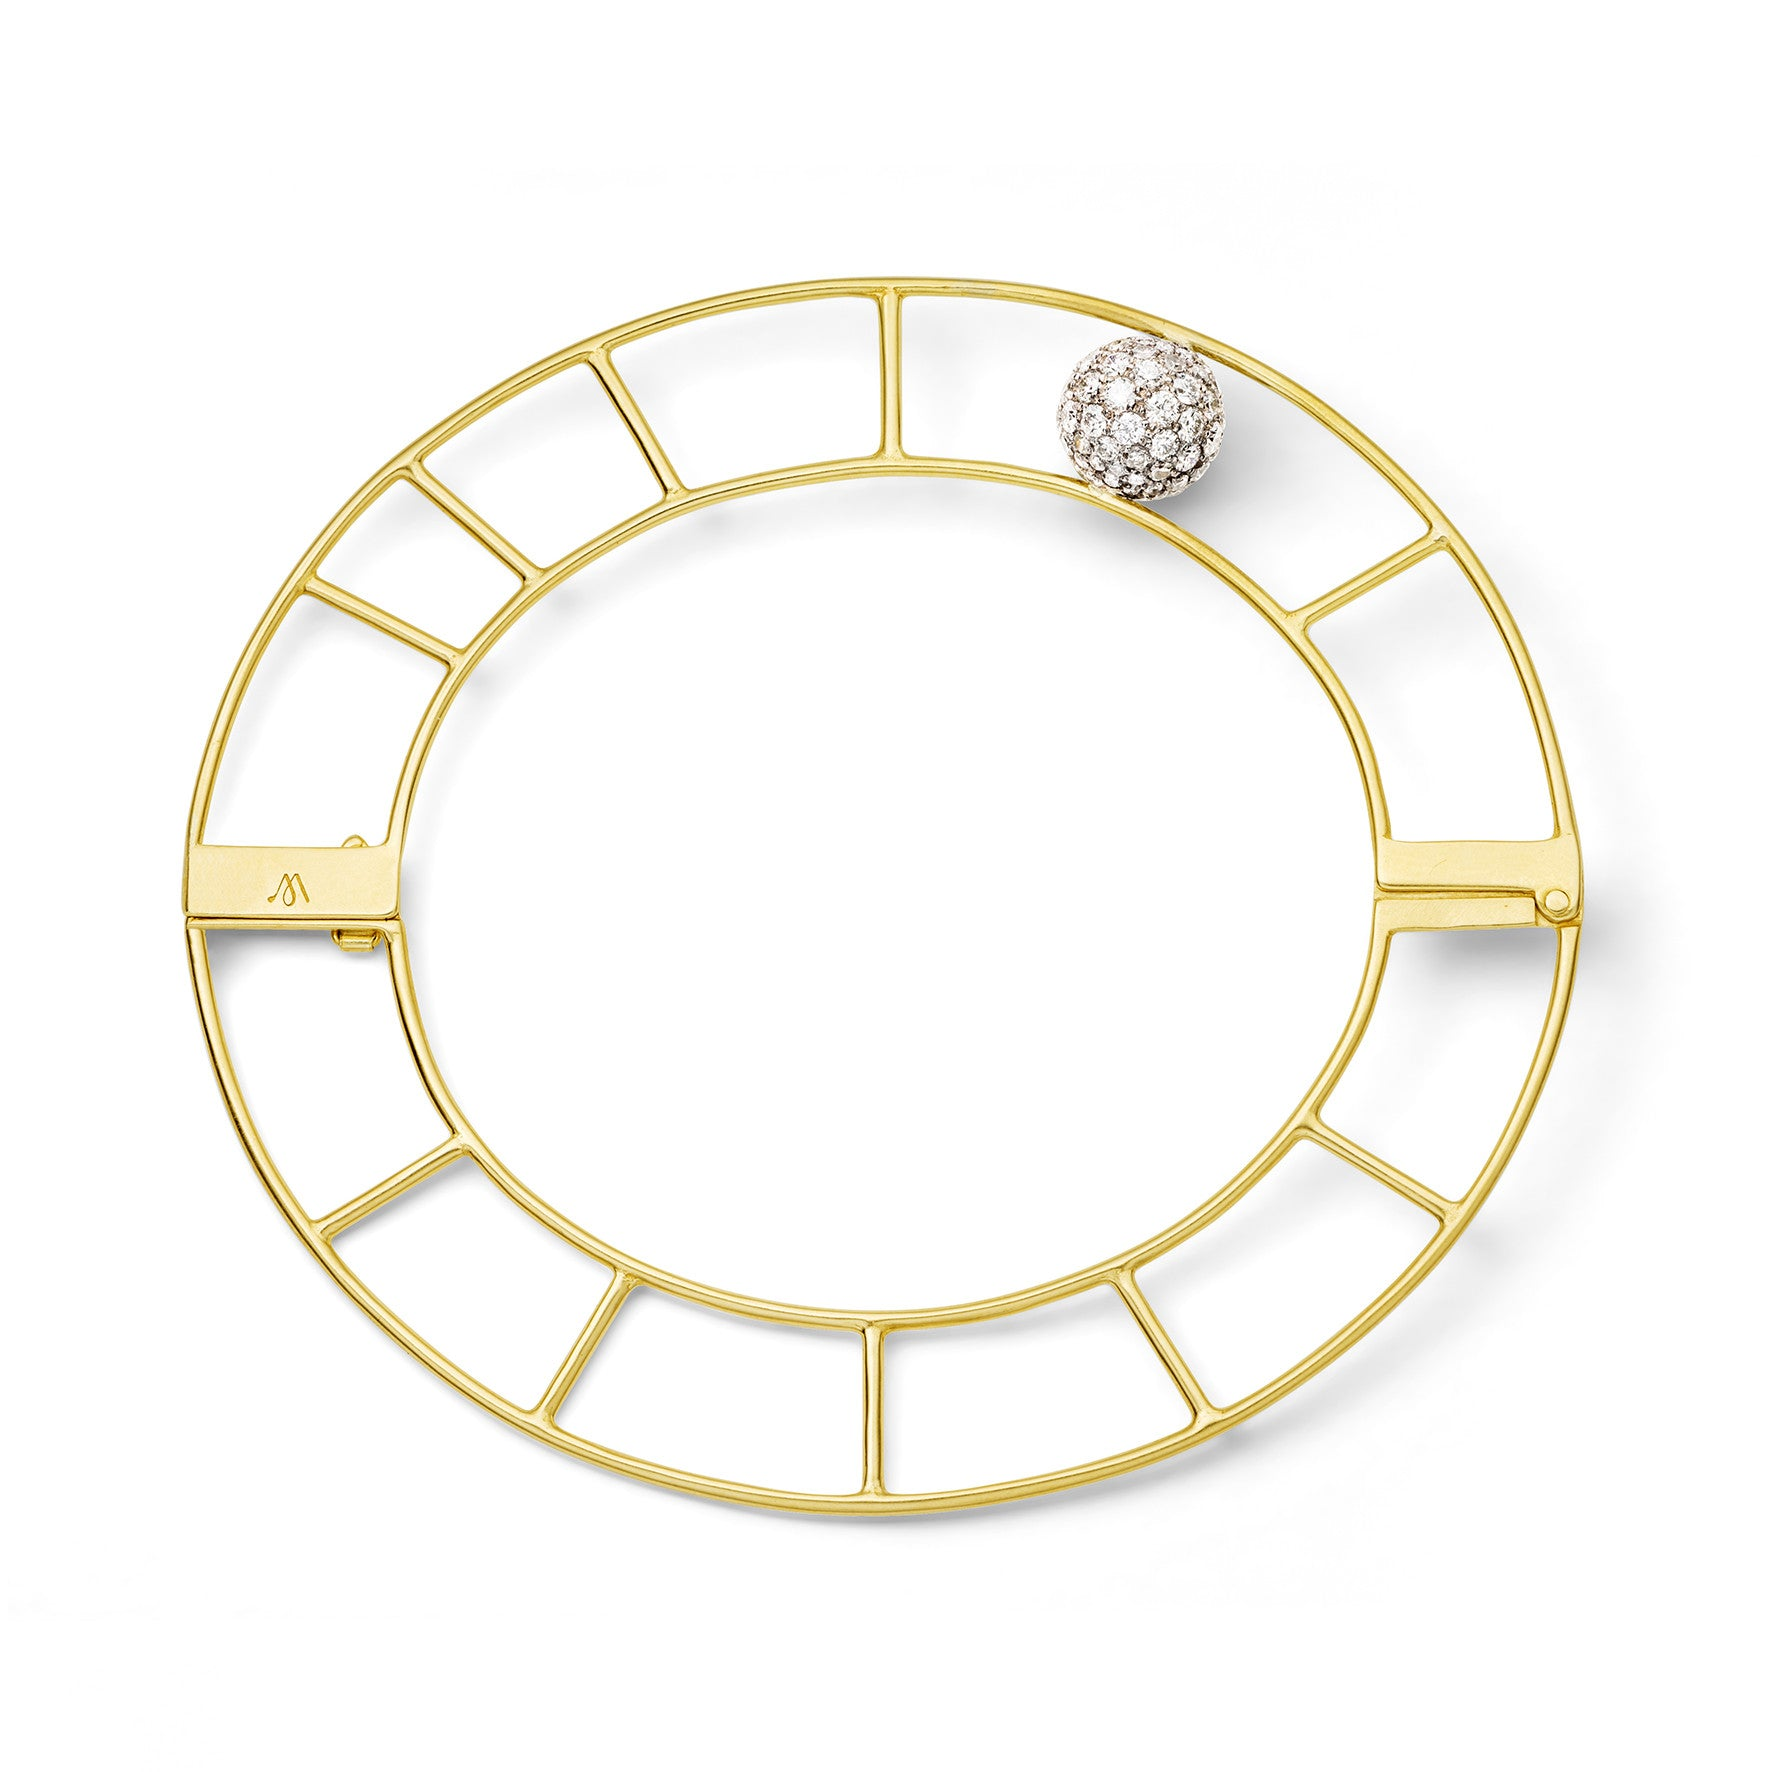 Bracelet Vertical Cage Or jaune et Diamants